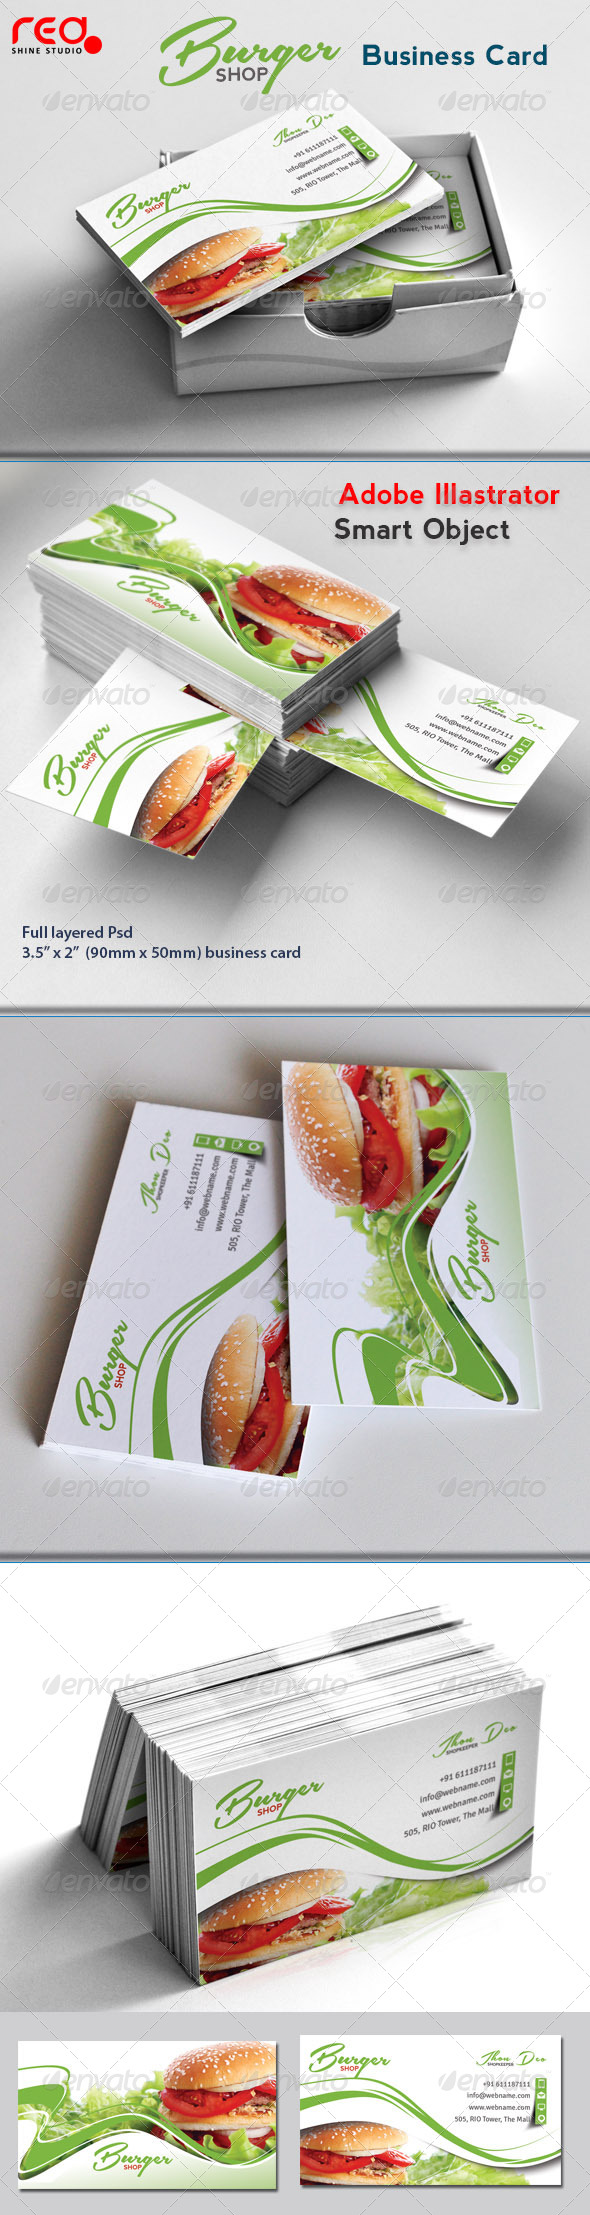 Fast Food Business Card - Industry Specific Business Cards